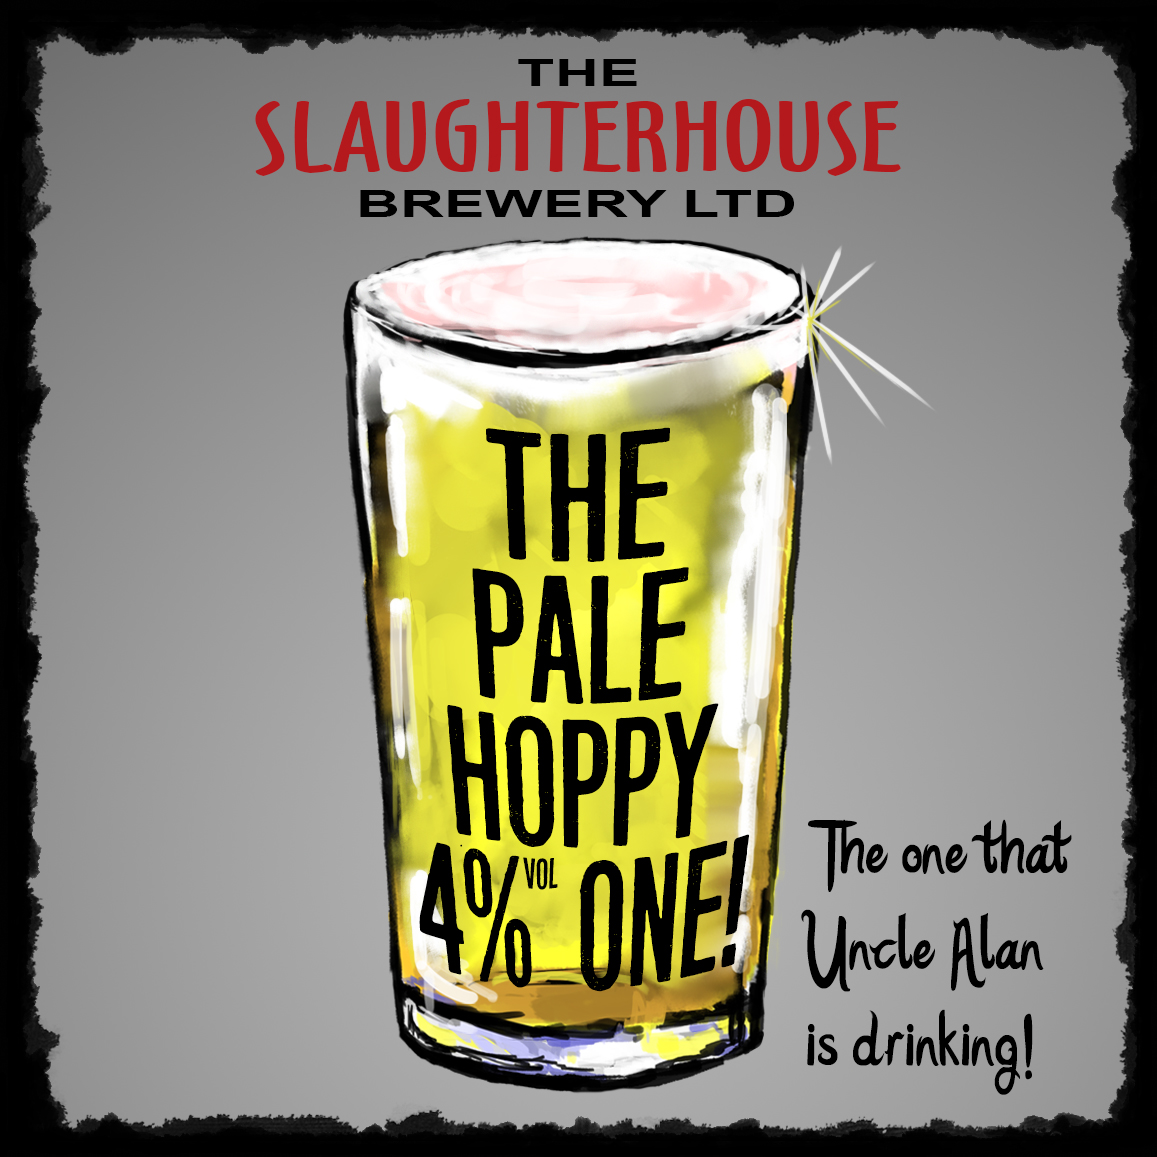 The Pale Hoppy 4% one